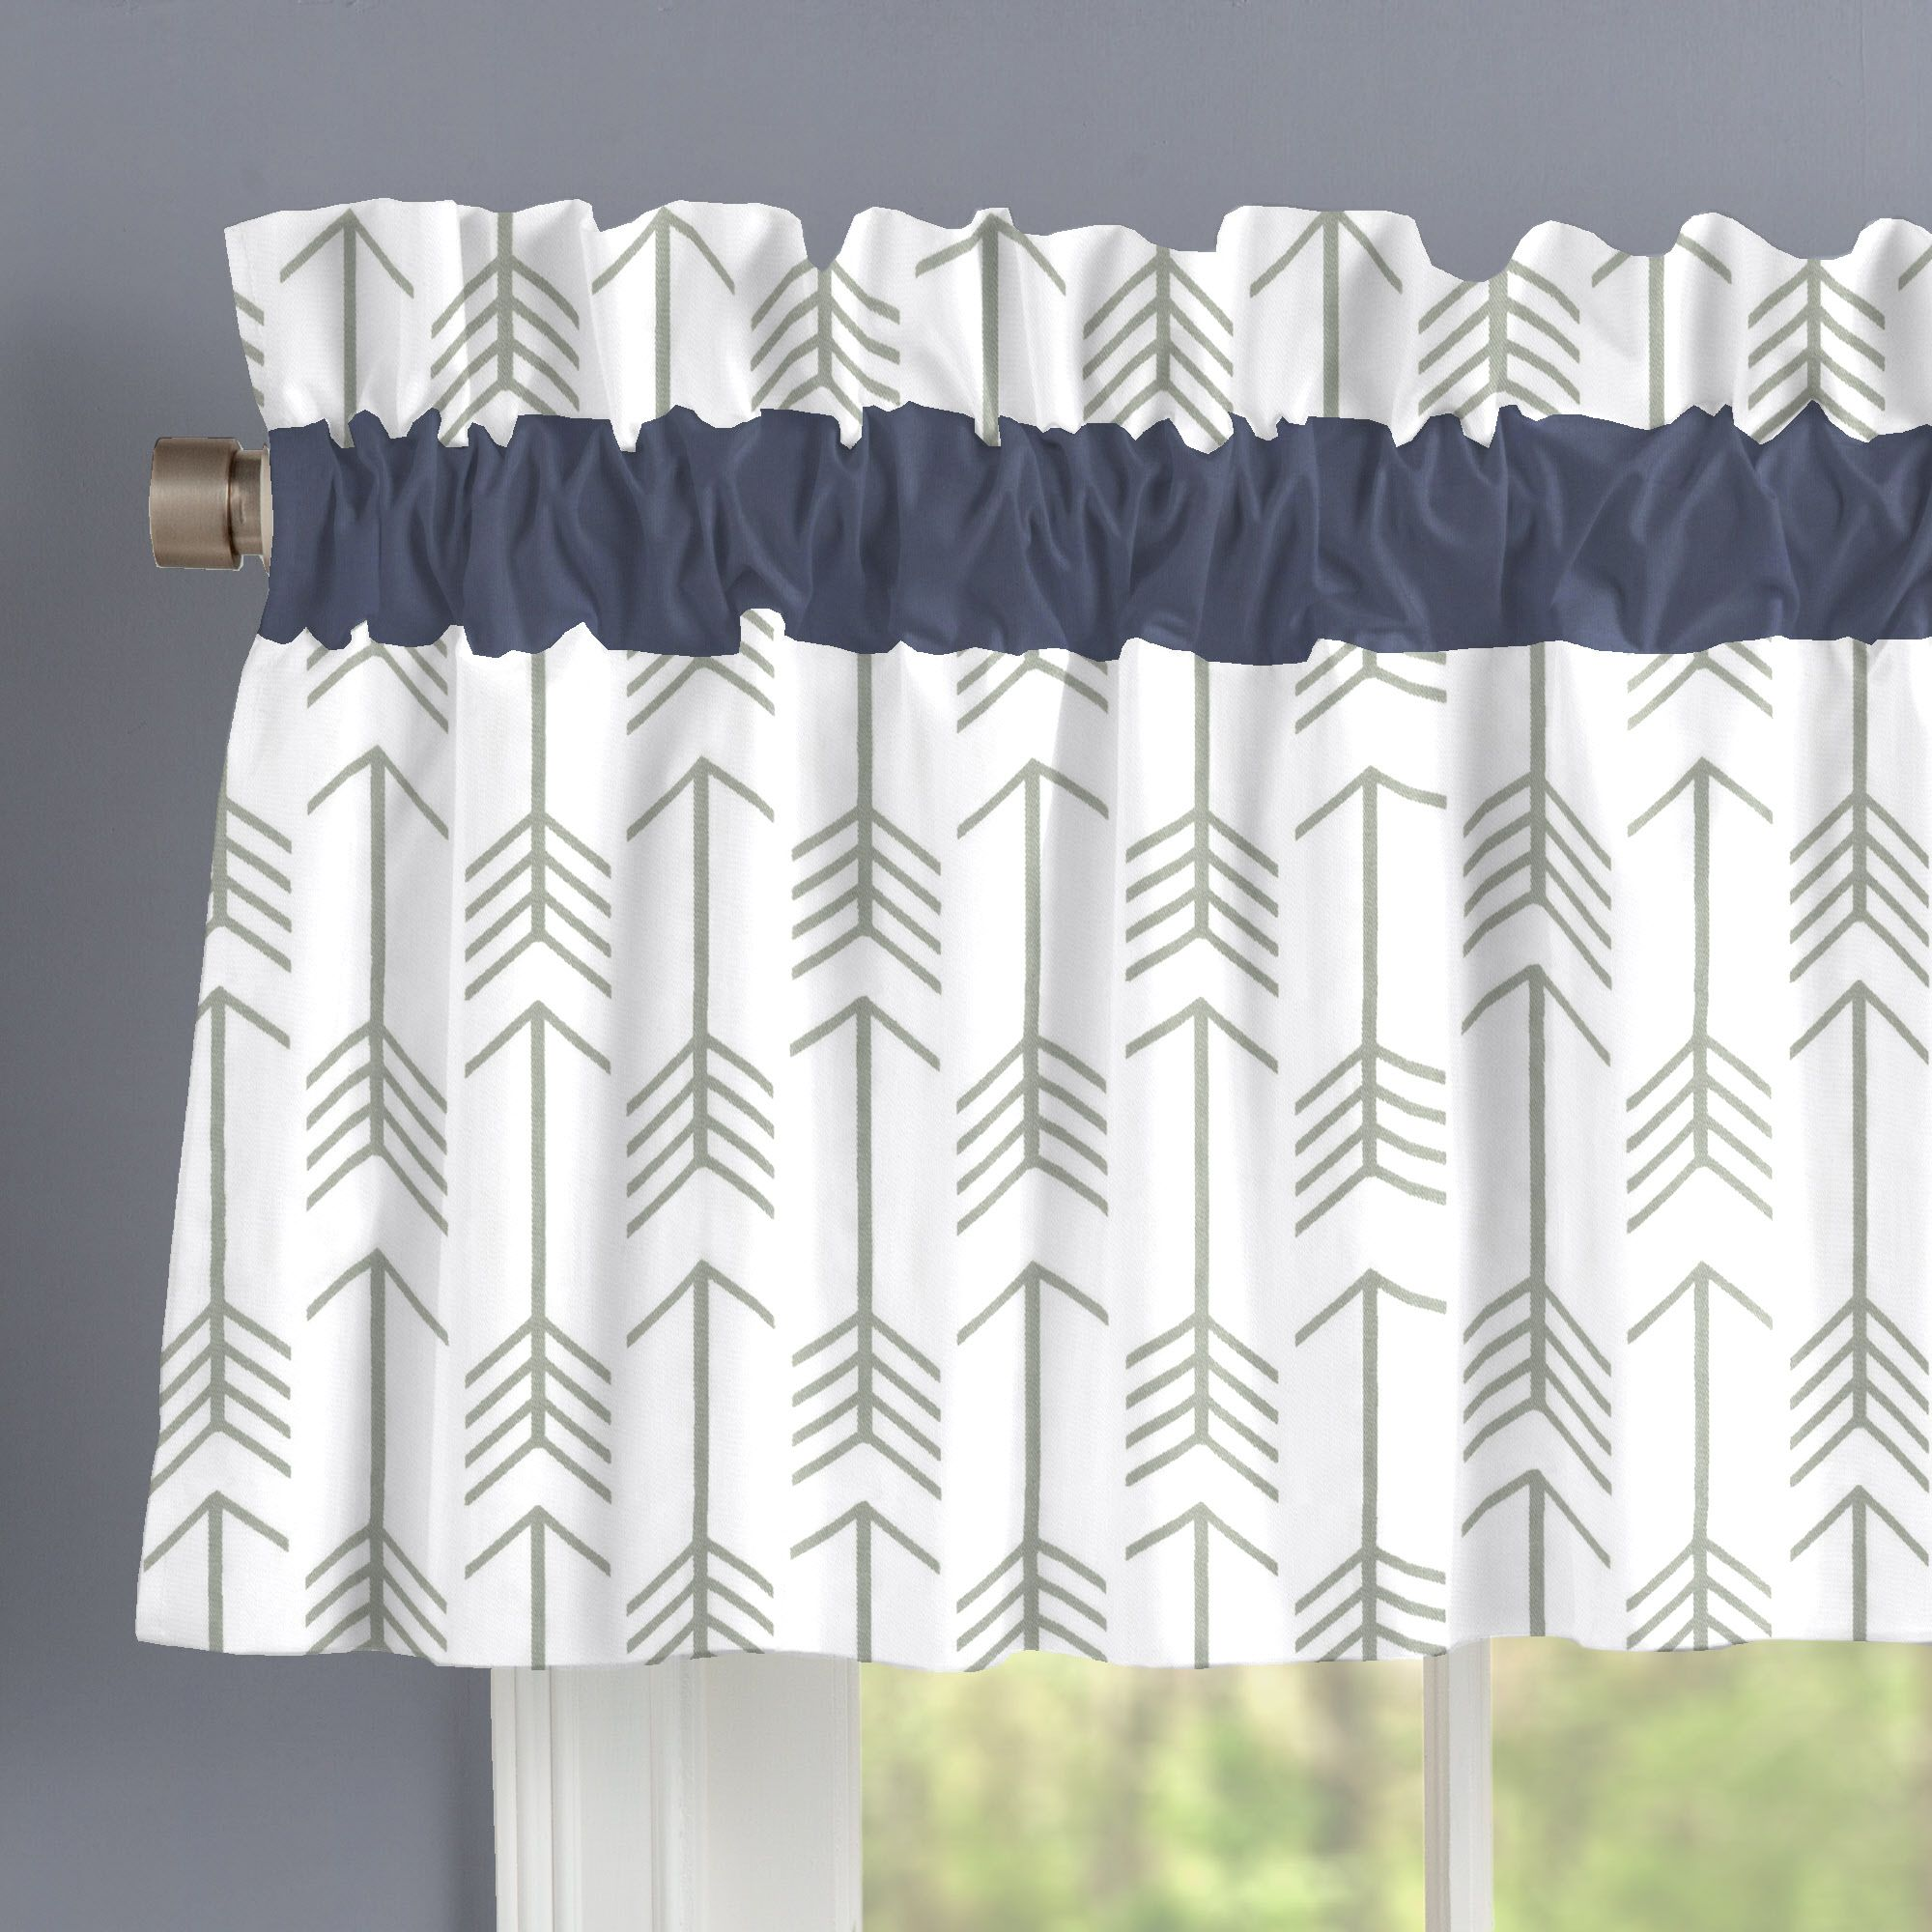 for beach kitchen bedding waverly lowes grey themed modern aqua valances curtain yellow sets pretty fabrics covering bathroom window curtains using valance room and living ideas enchanting